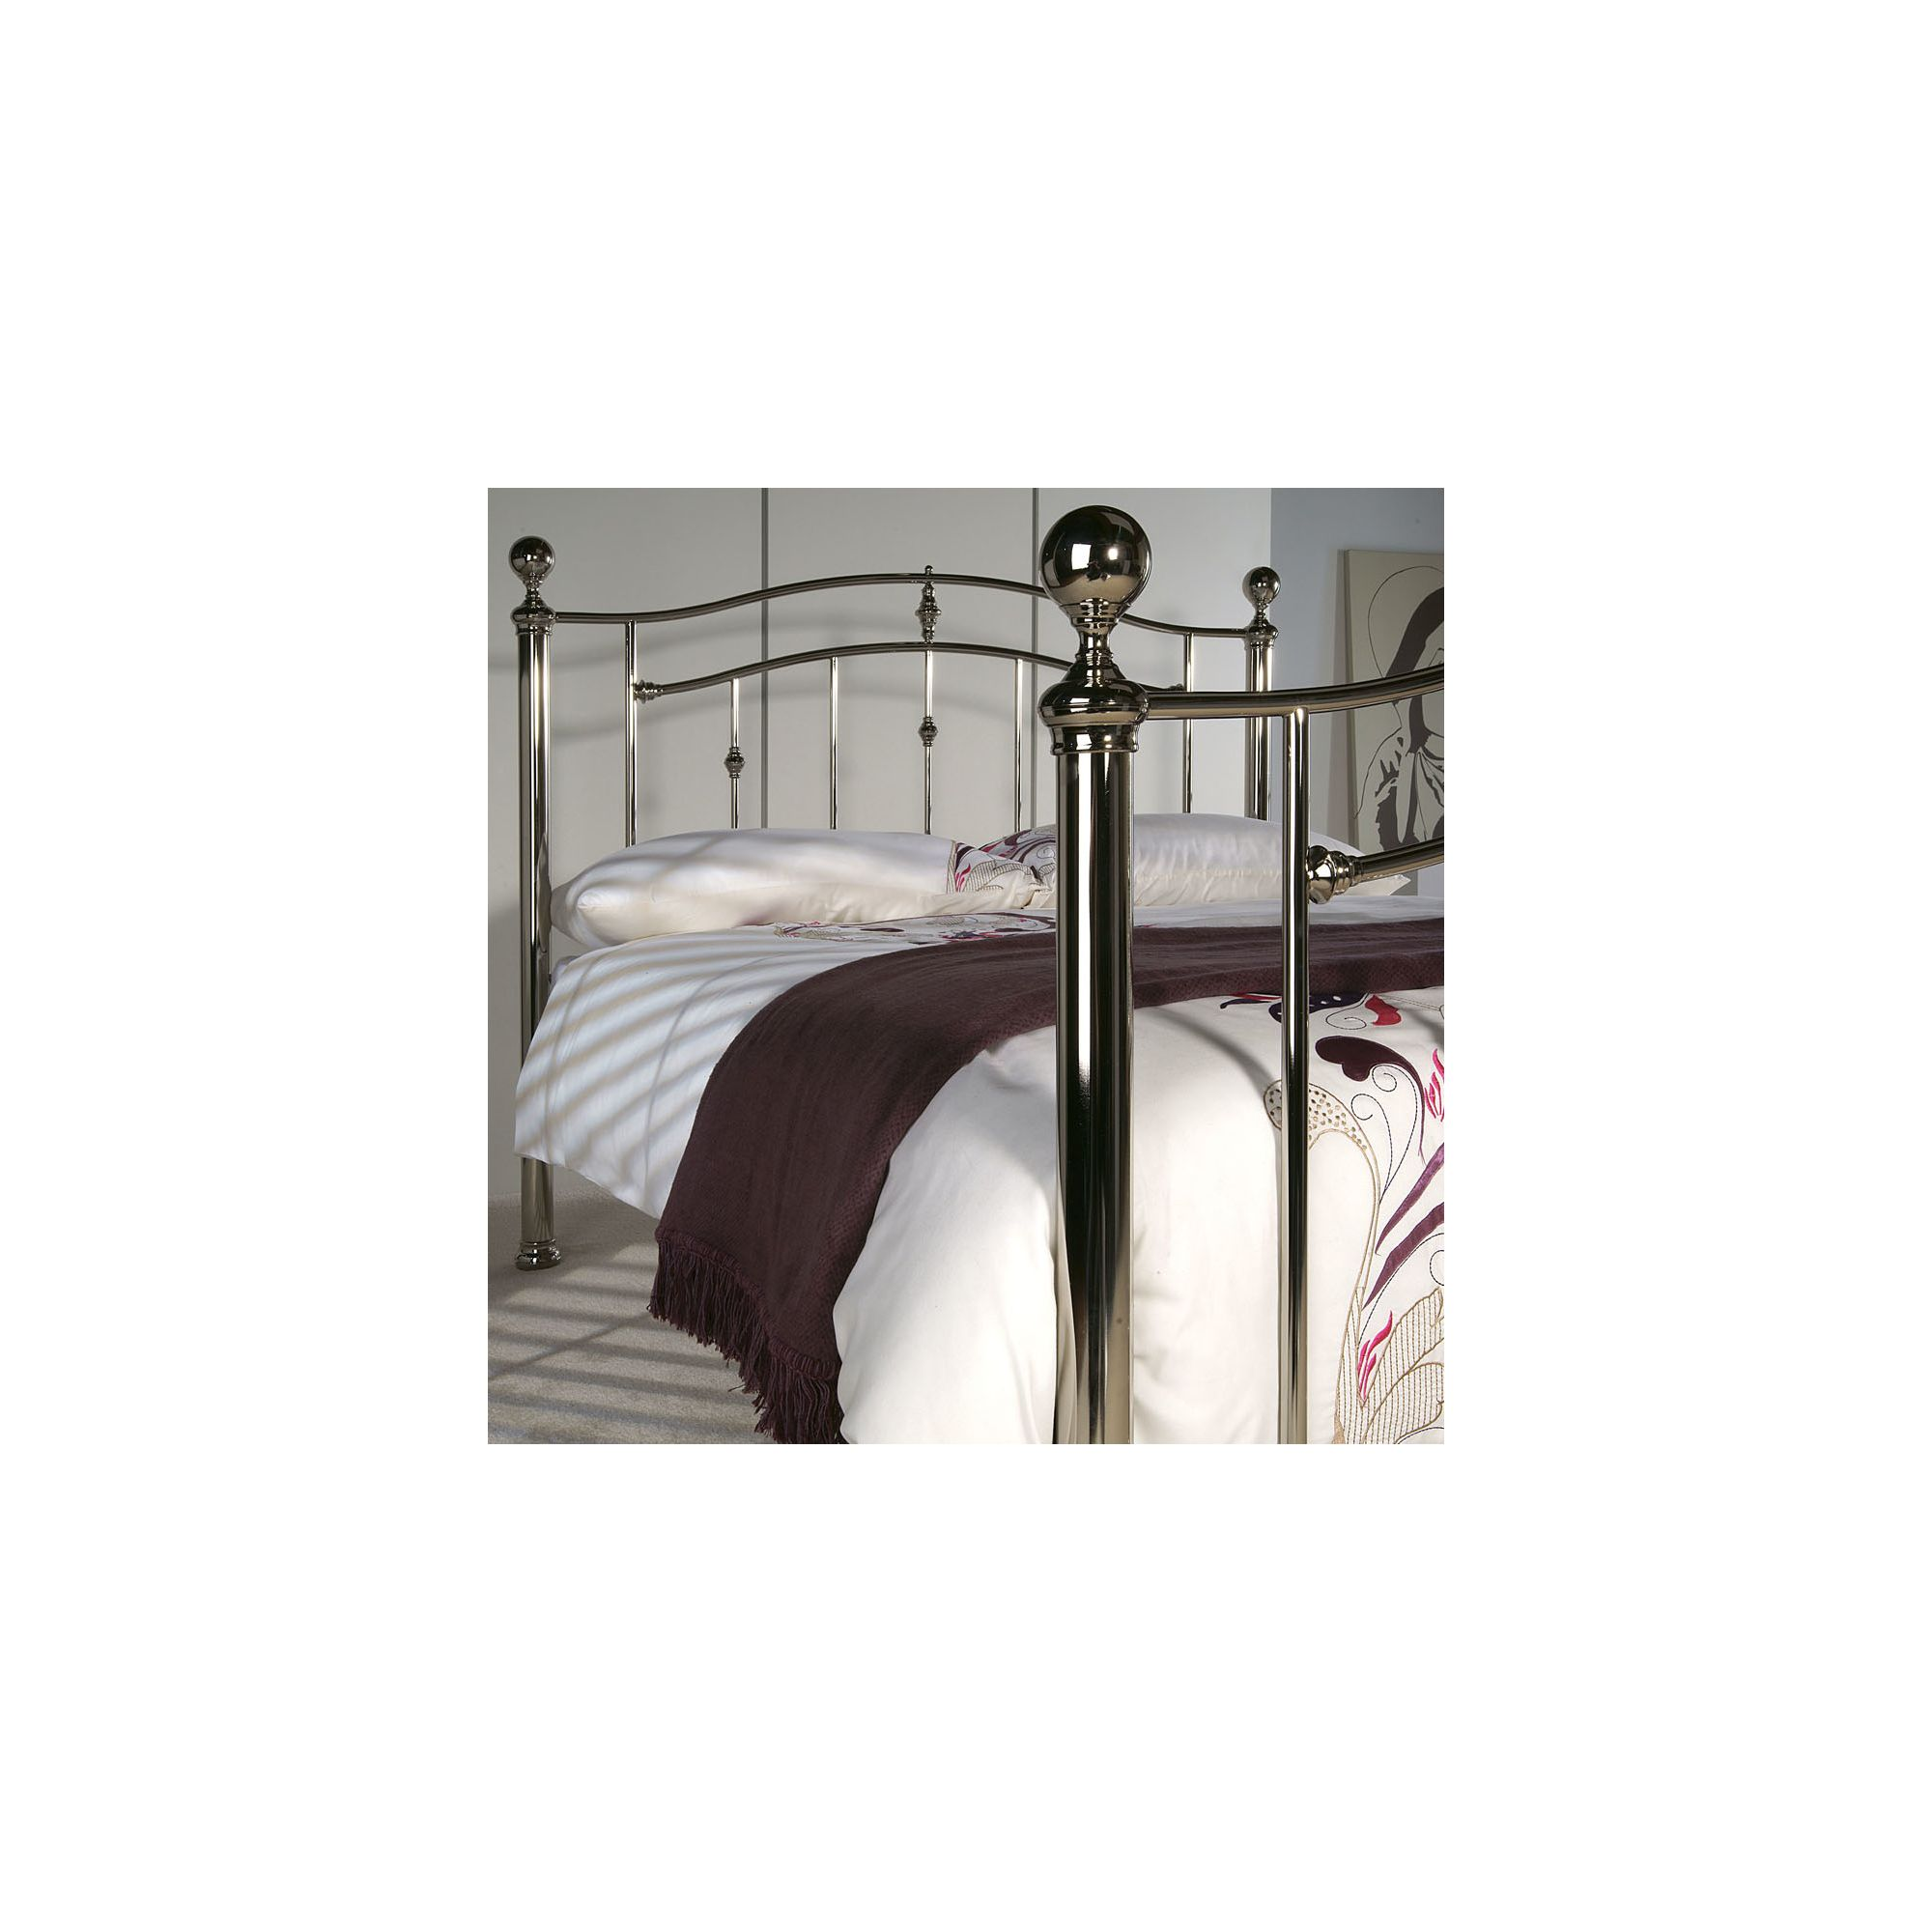 Limelight Lyra Bedstead - Double at Tesco Direct